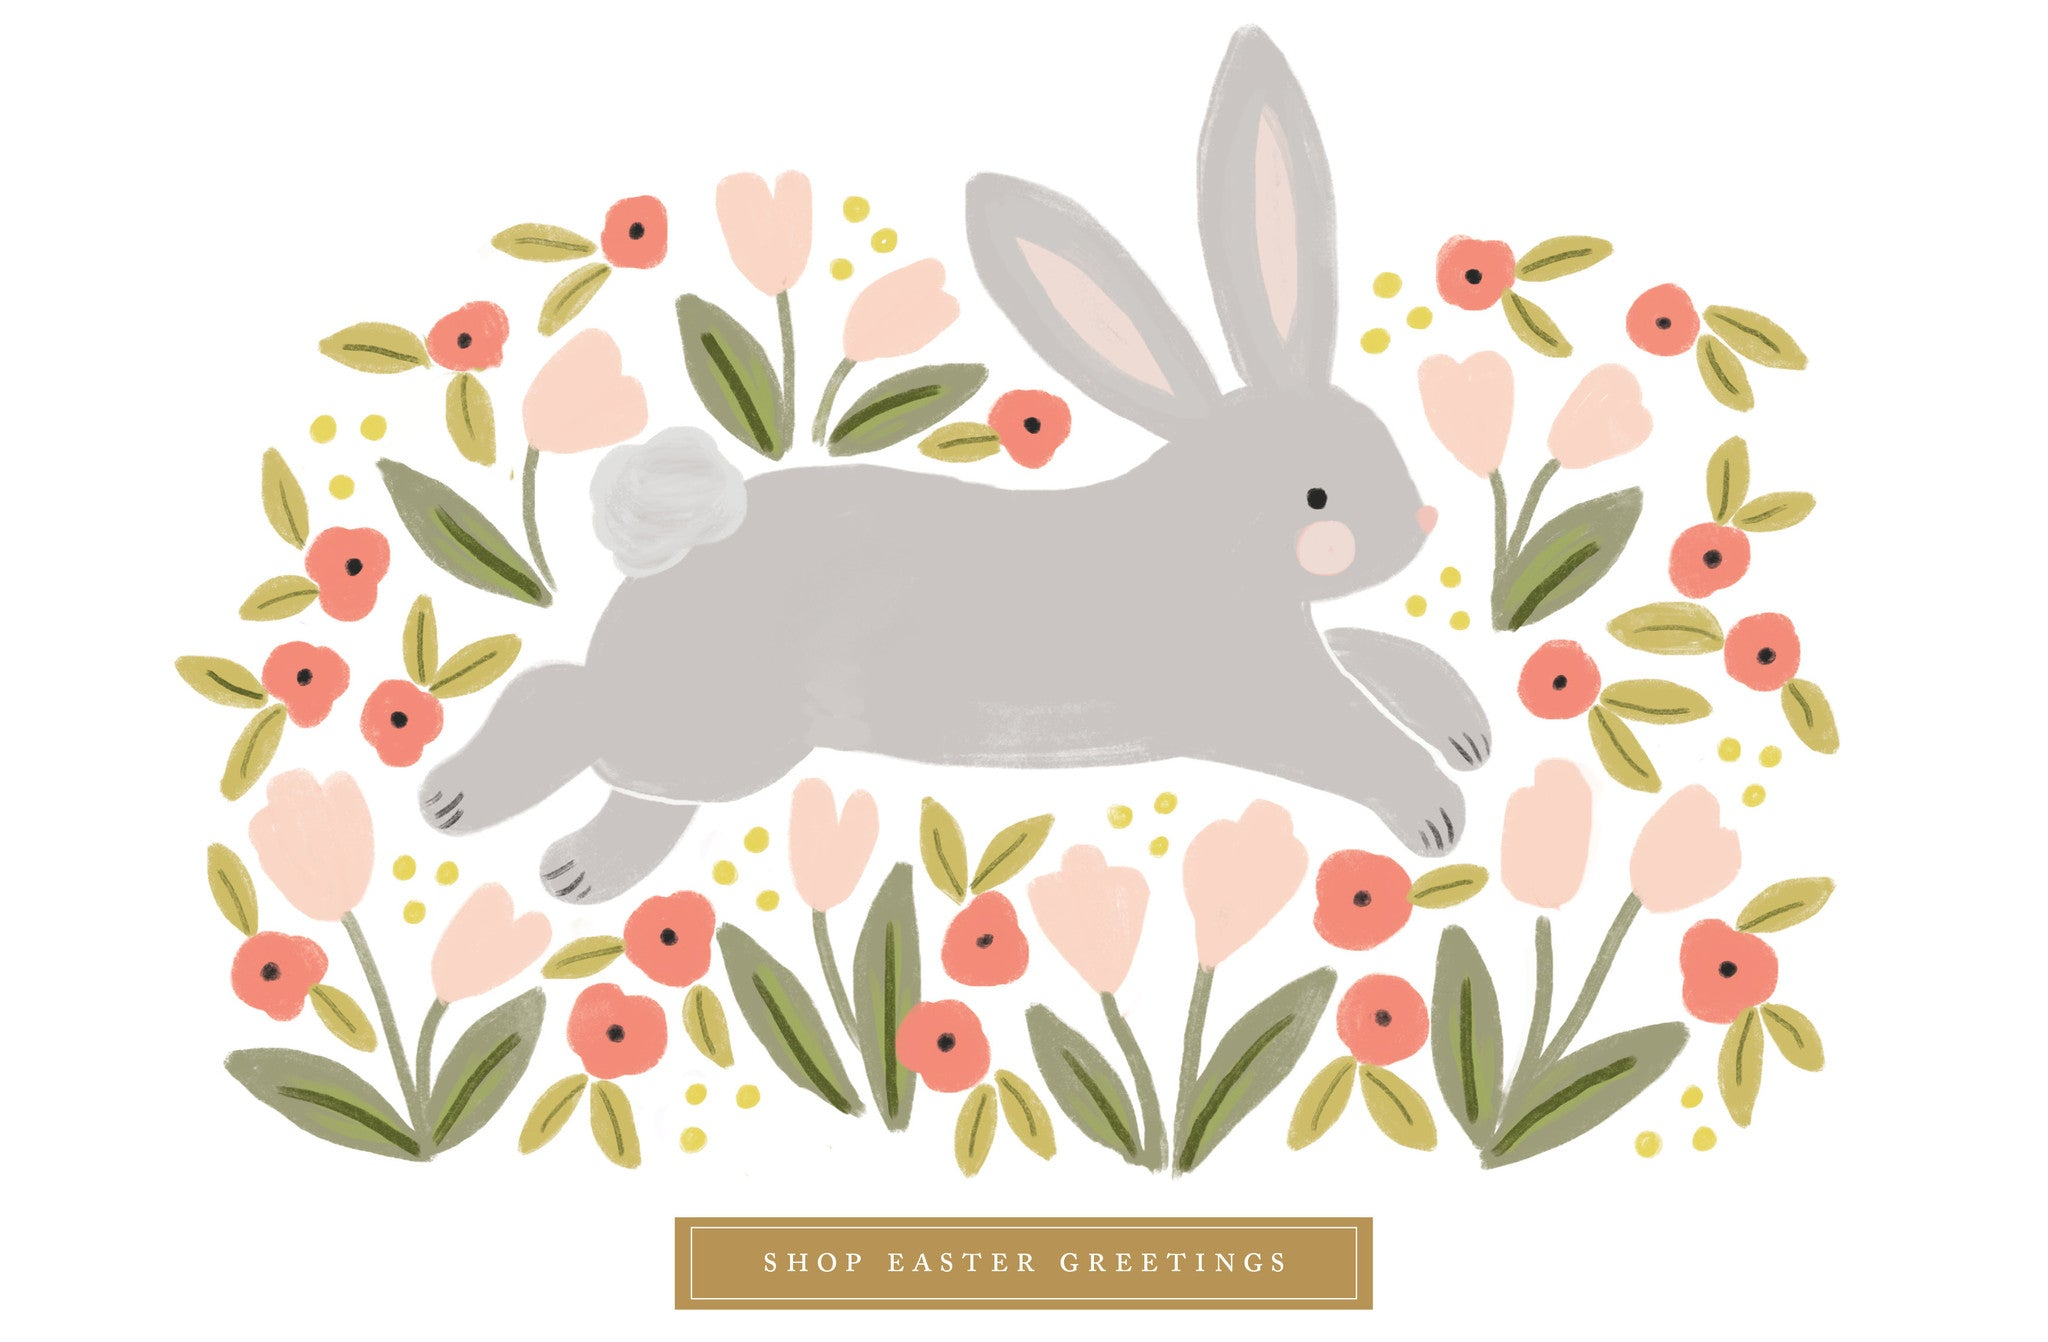 Shop Easter Greetings